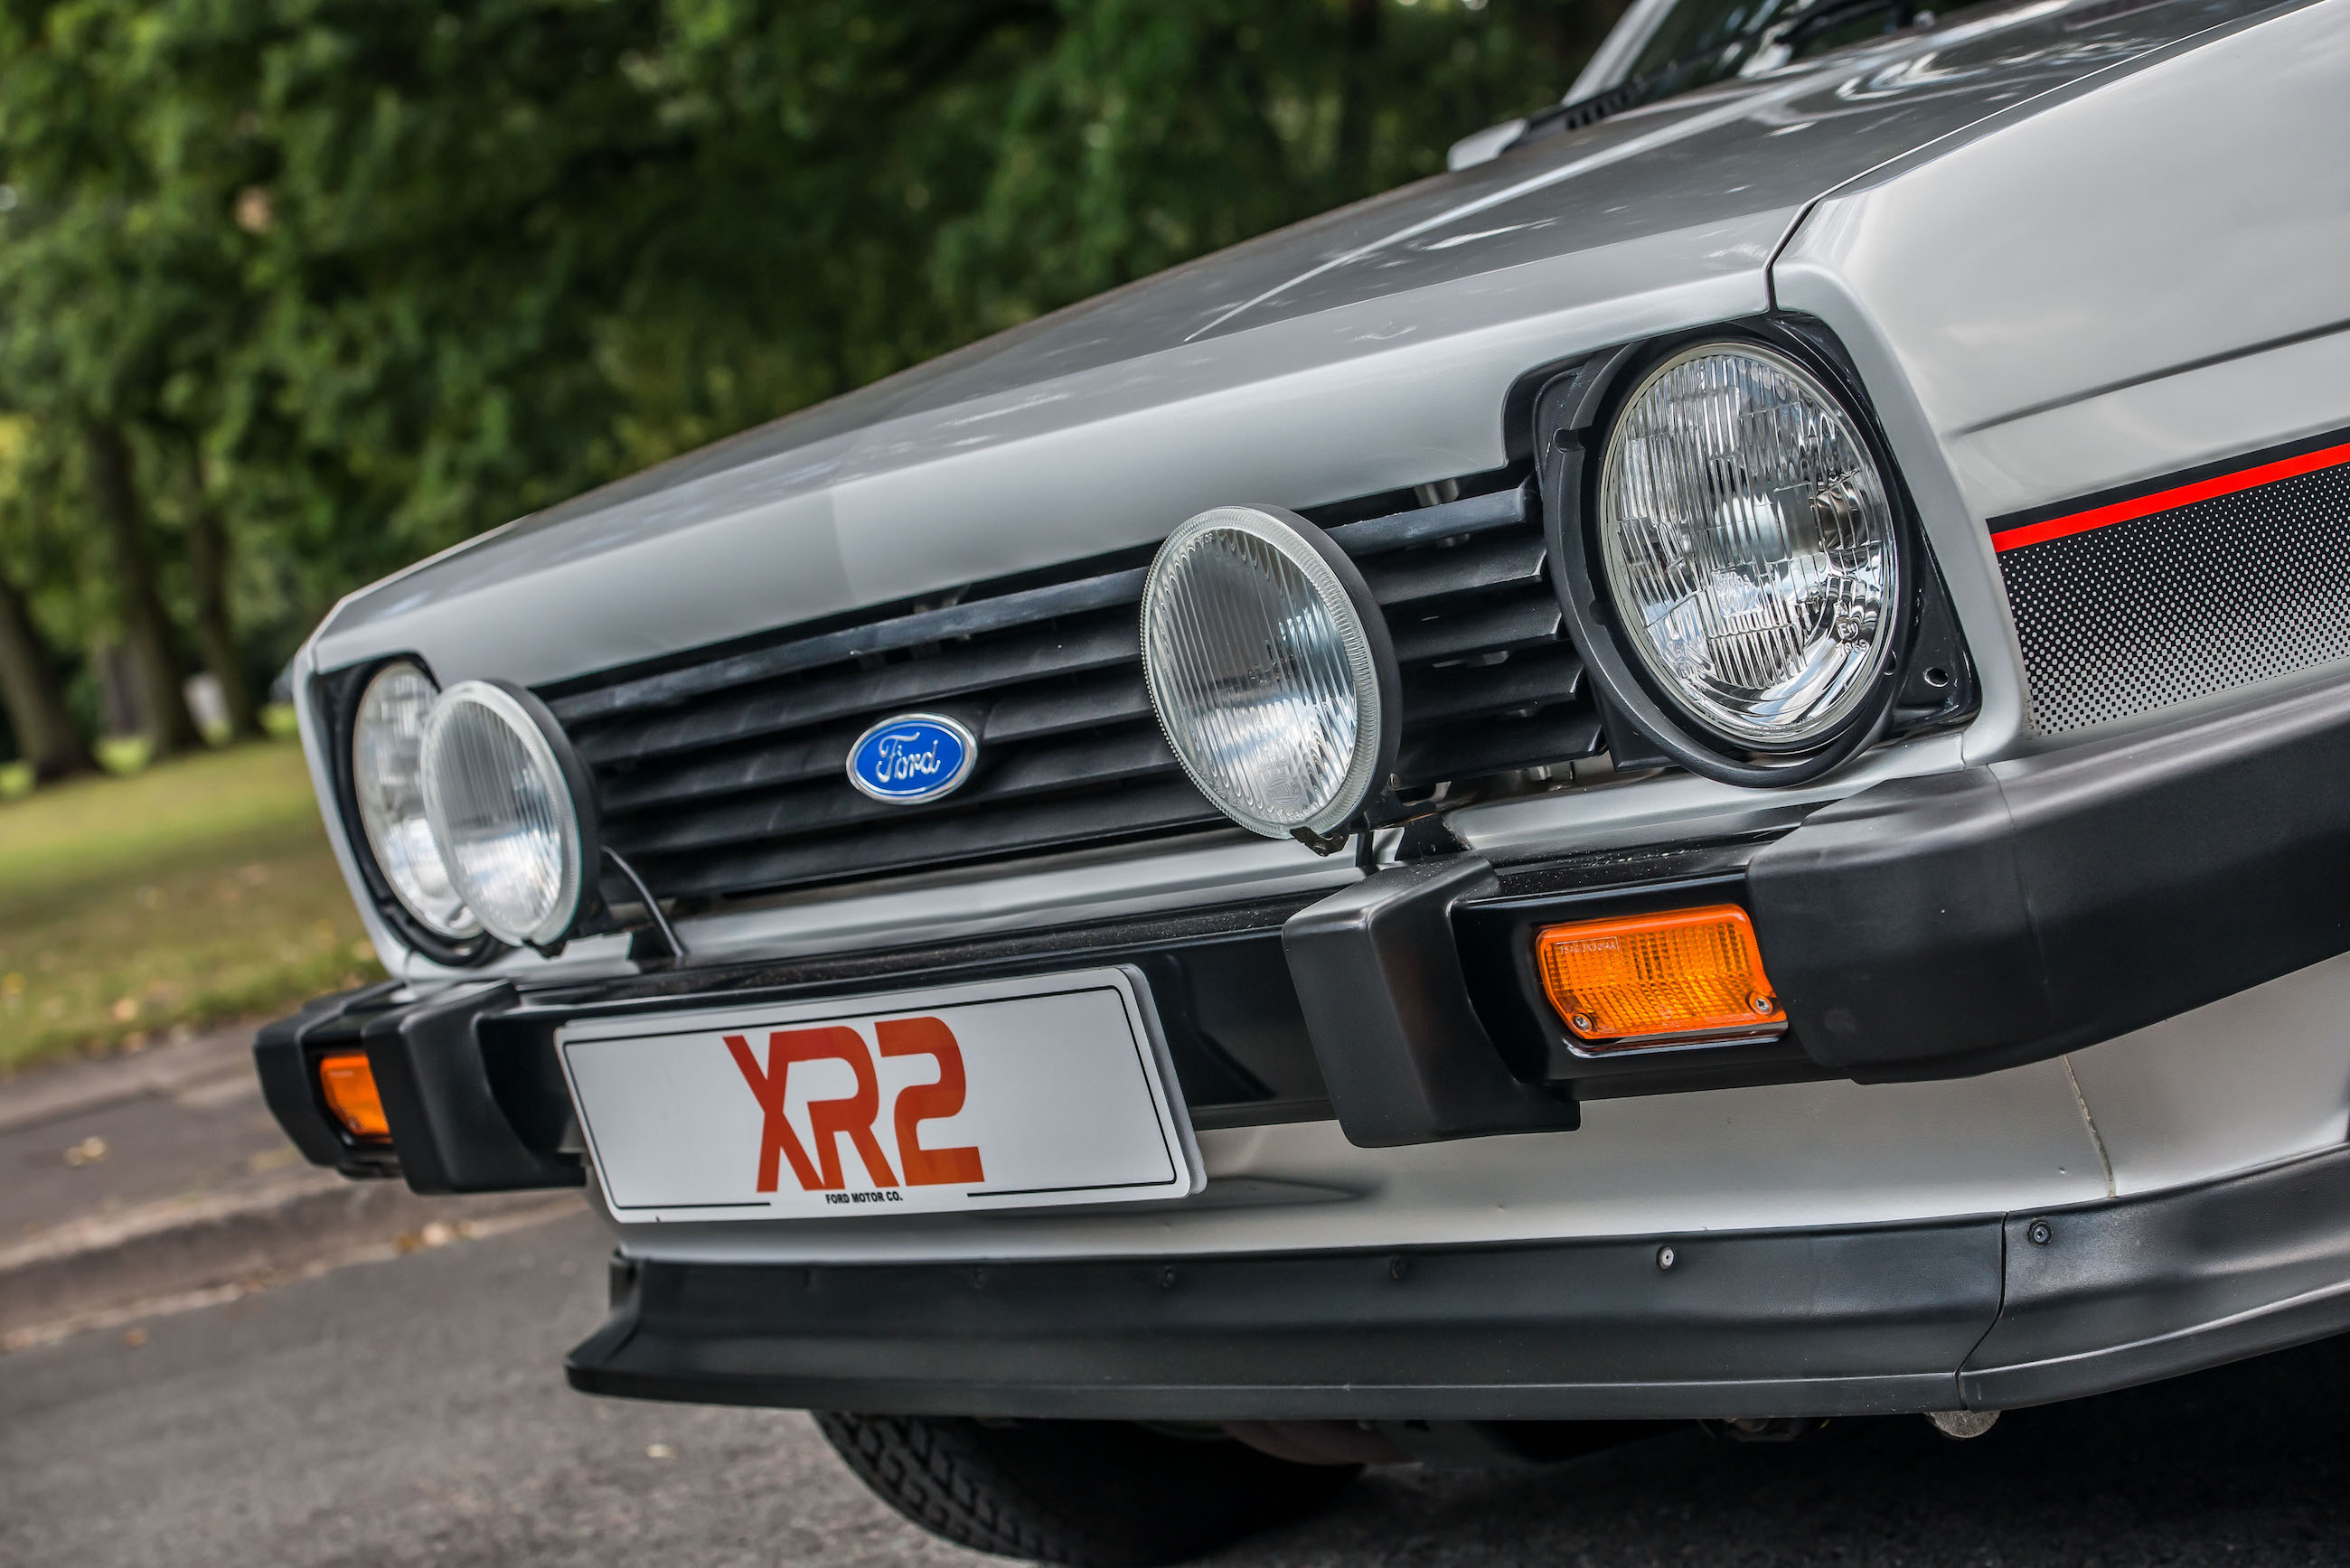 Ford Fiesta XR2 mark 1 front